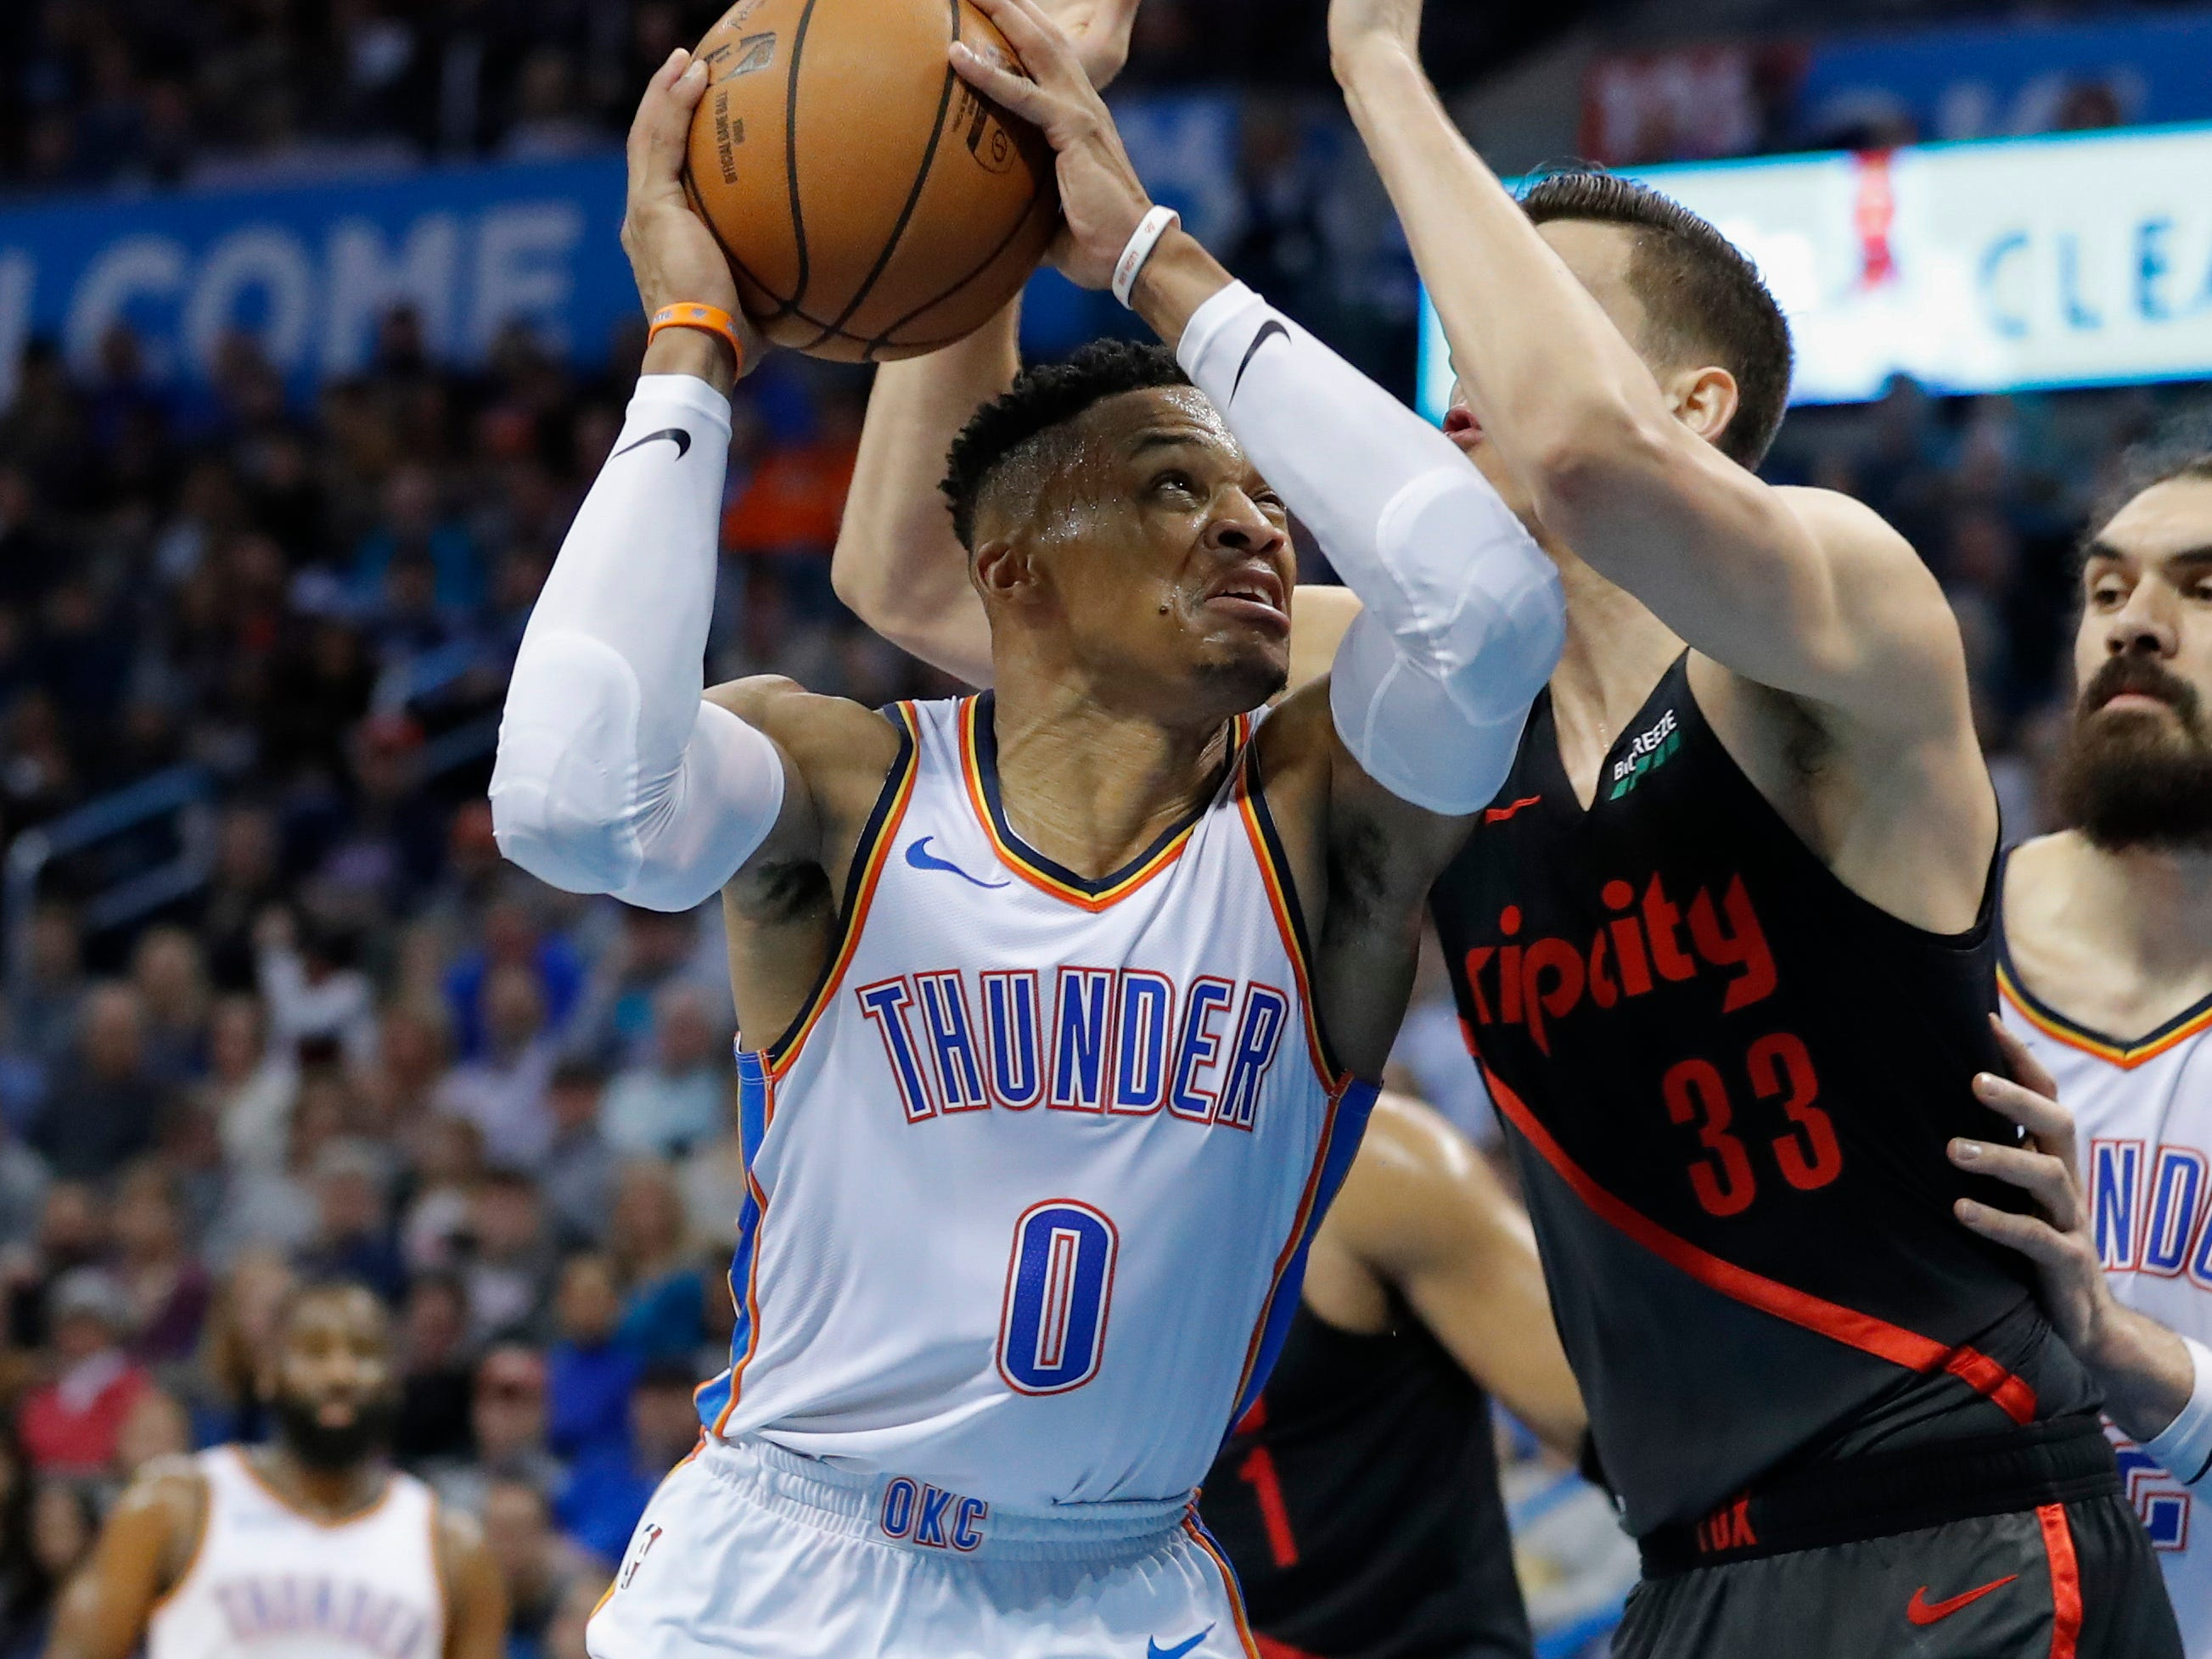 80. Russell Westbrook, Thunder (Feb. 11): 21 points, 14 rebounds, 11 assists in 120-111 win over Trail Blazers (23rd of season).